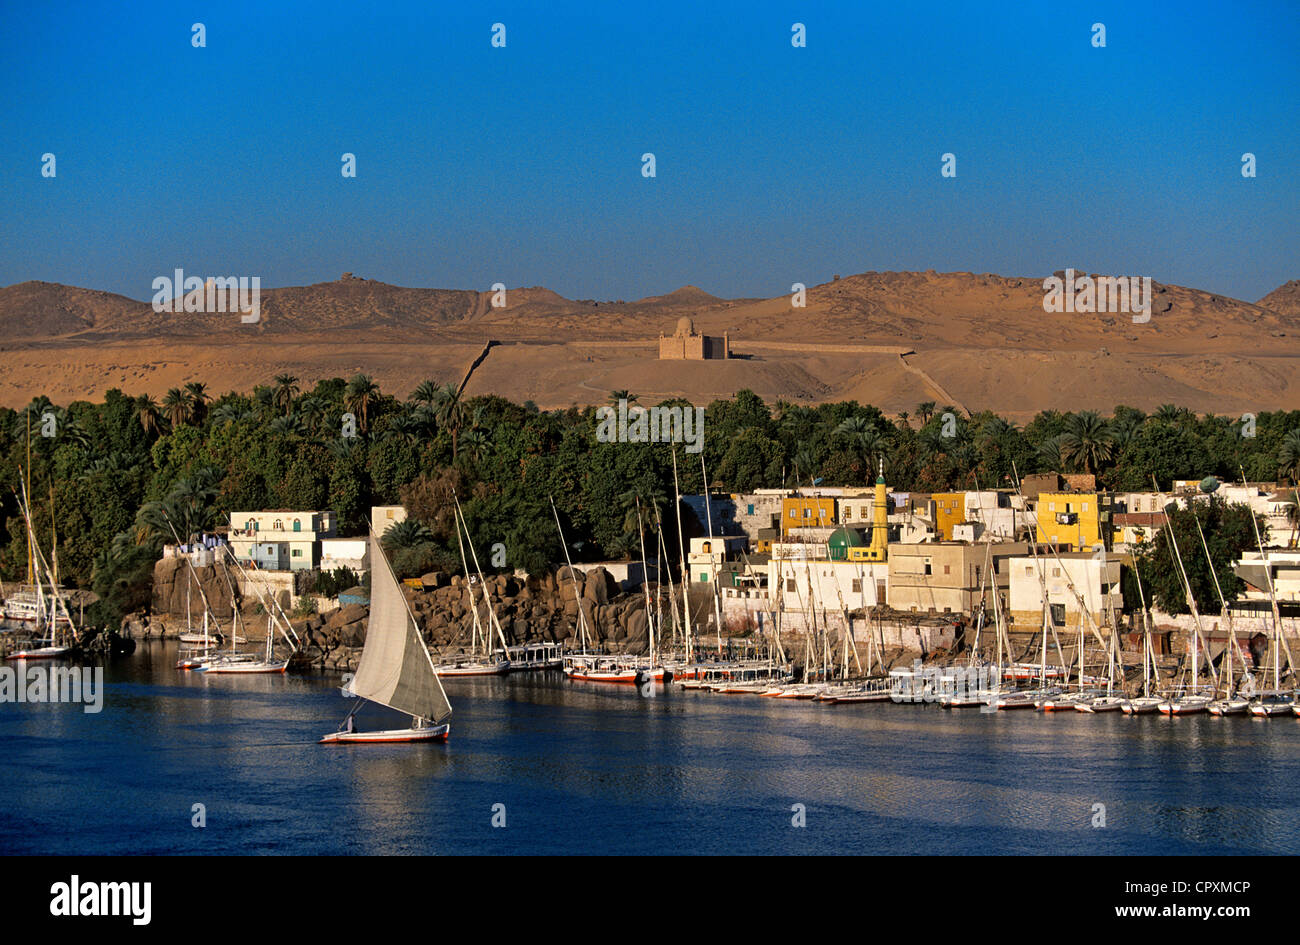 Egypt, Upper Egypt, Nile Valley, Aswan, feluccas on Nile River - Stock Image